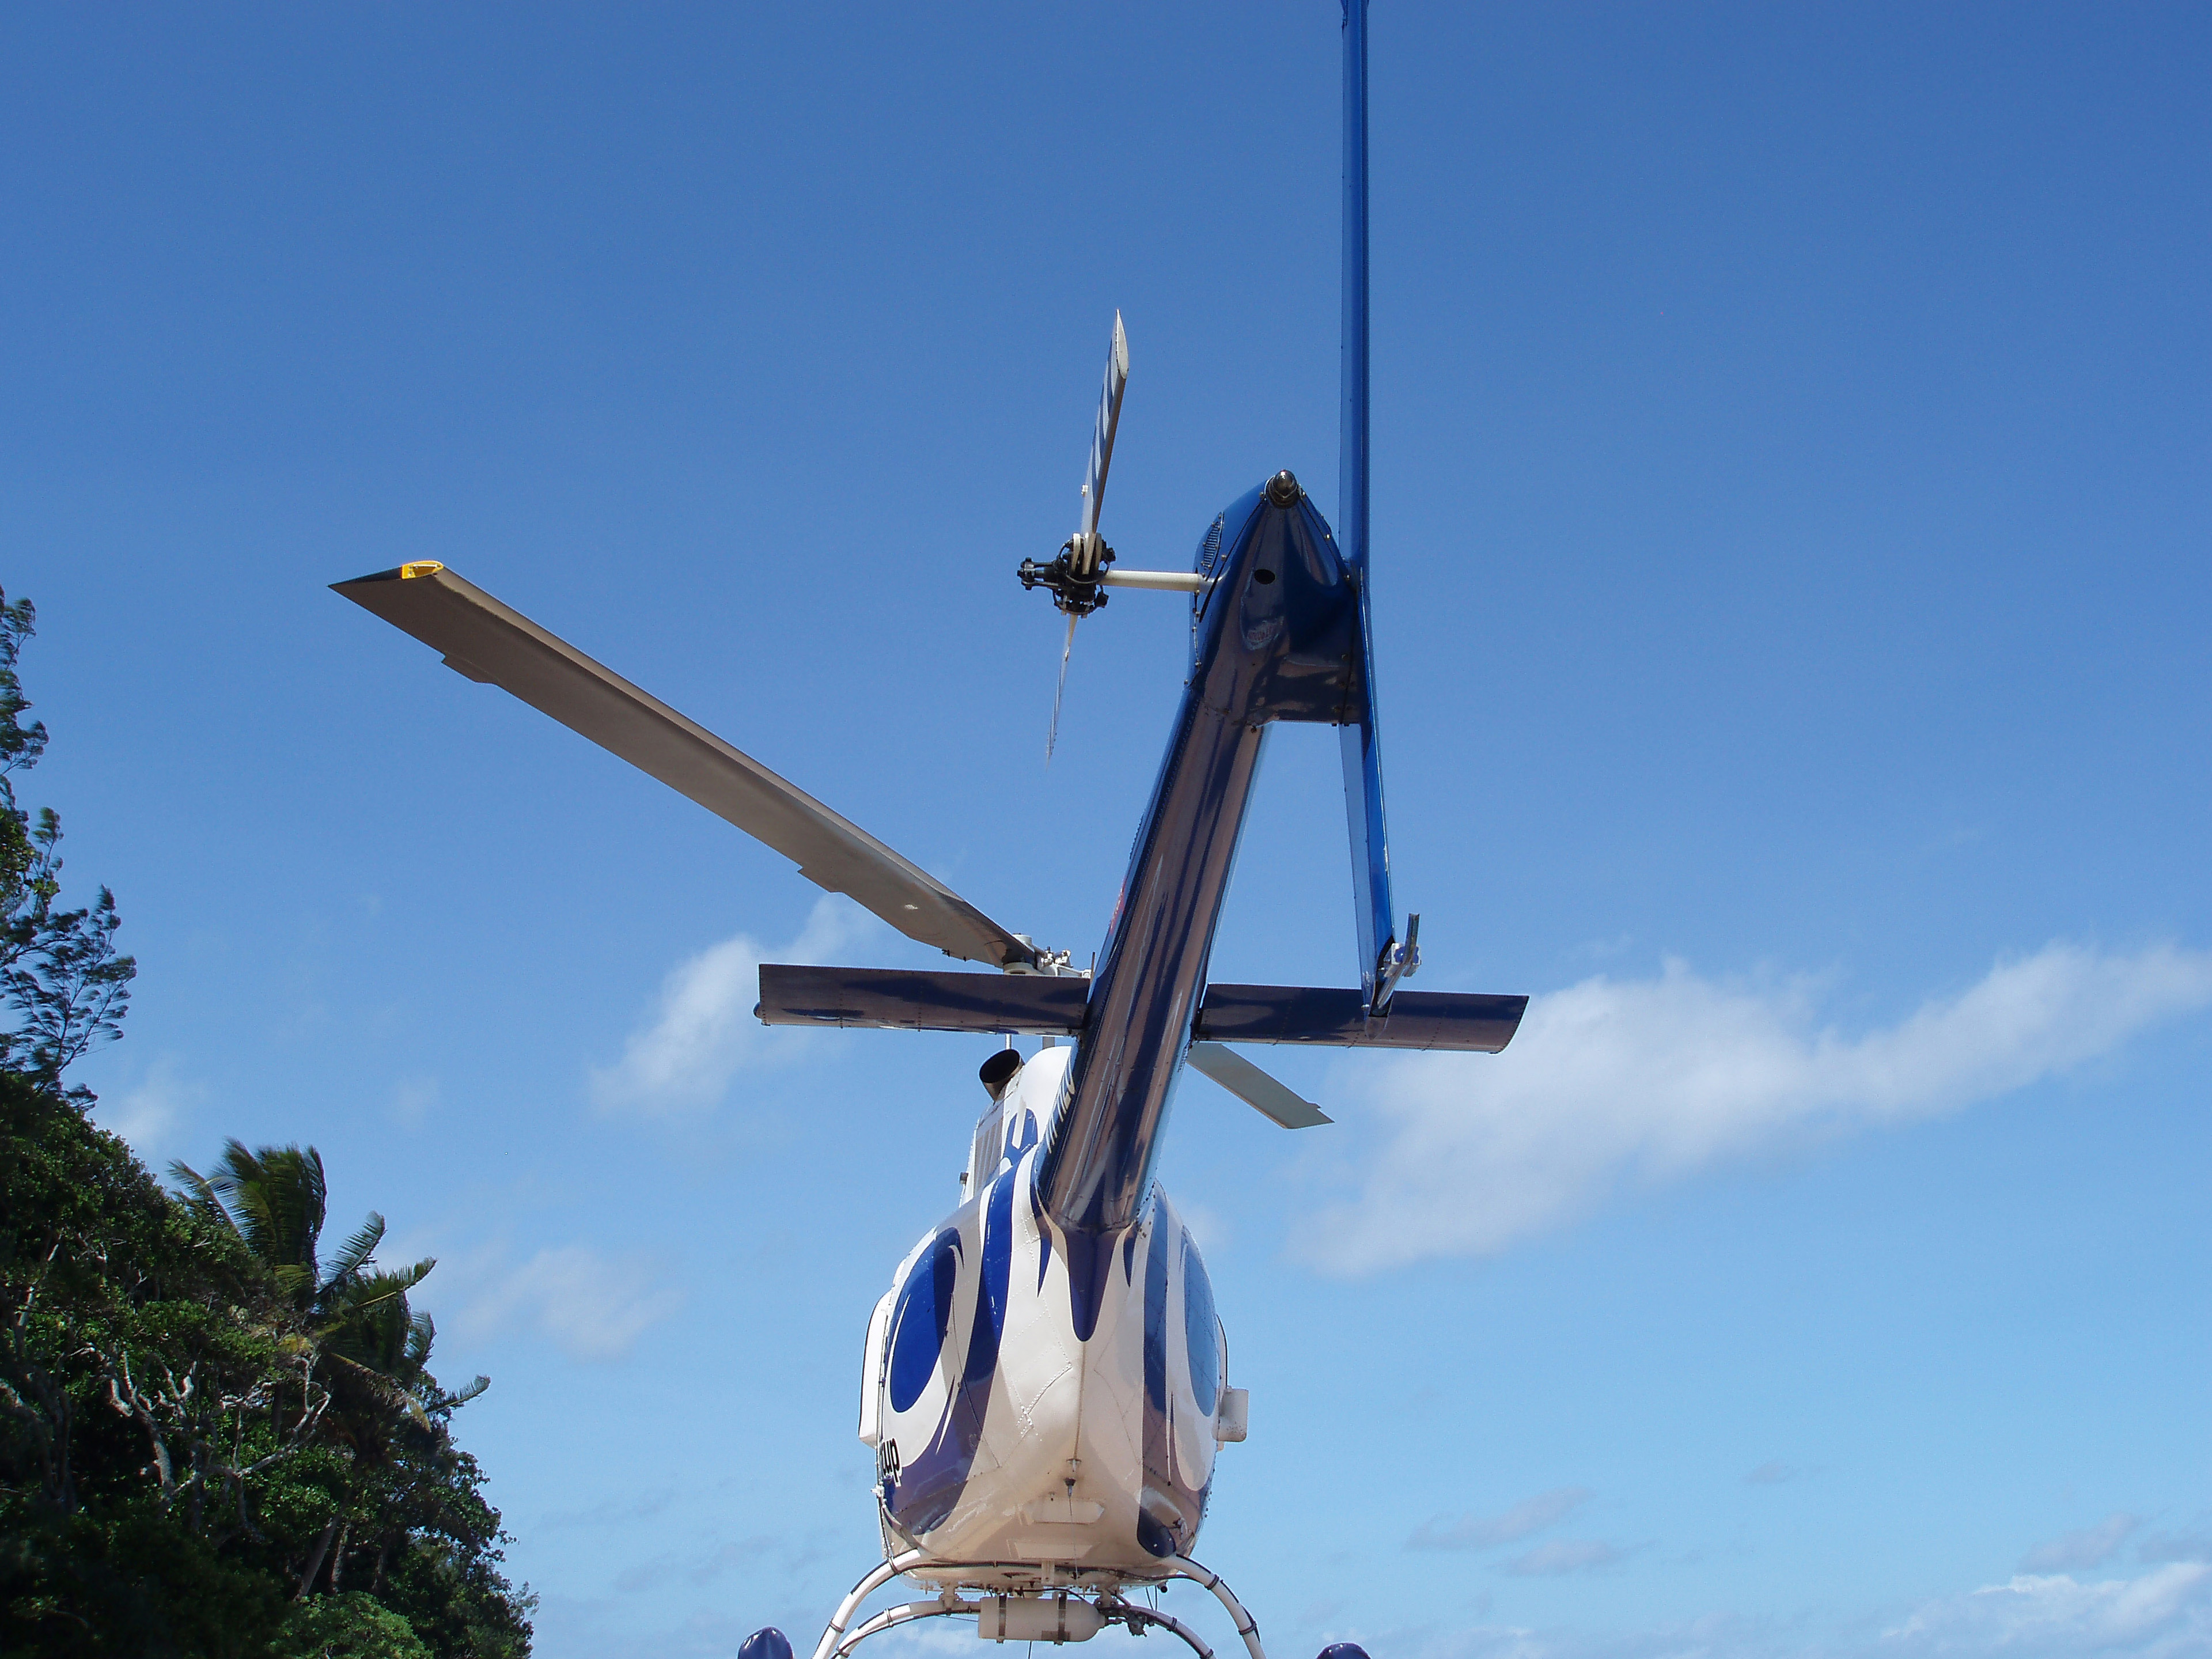 Rear low angle view of a parked helicopter showing the rotary blade on the tail and overhead rotor for lift against a clear blue sky